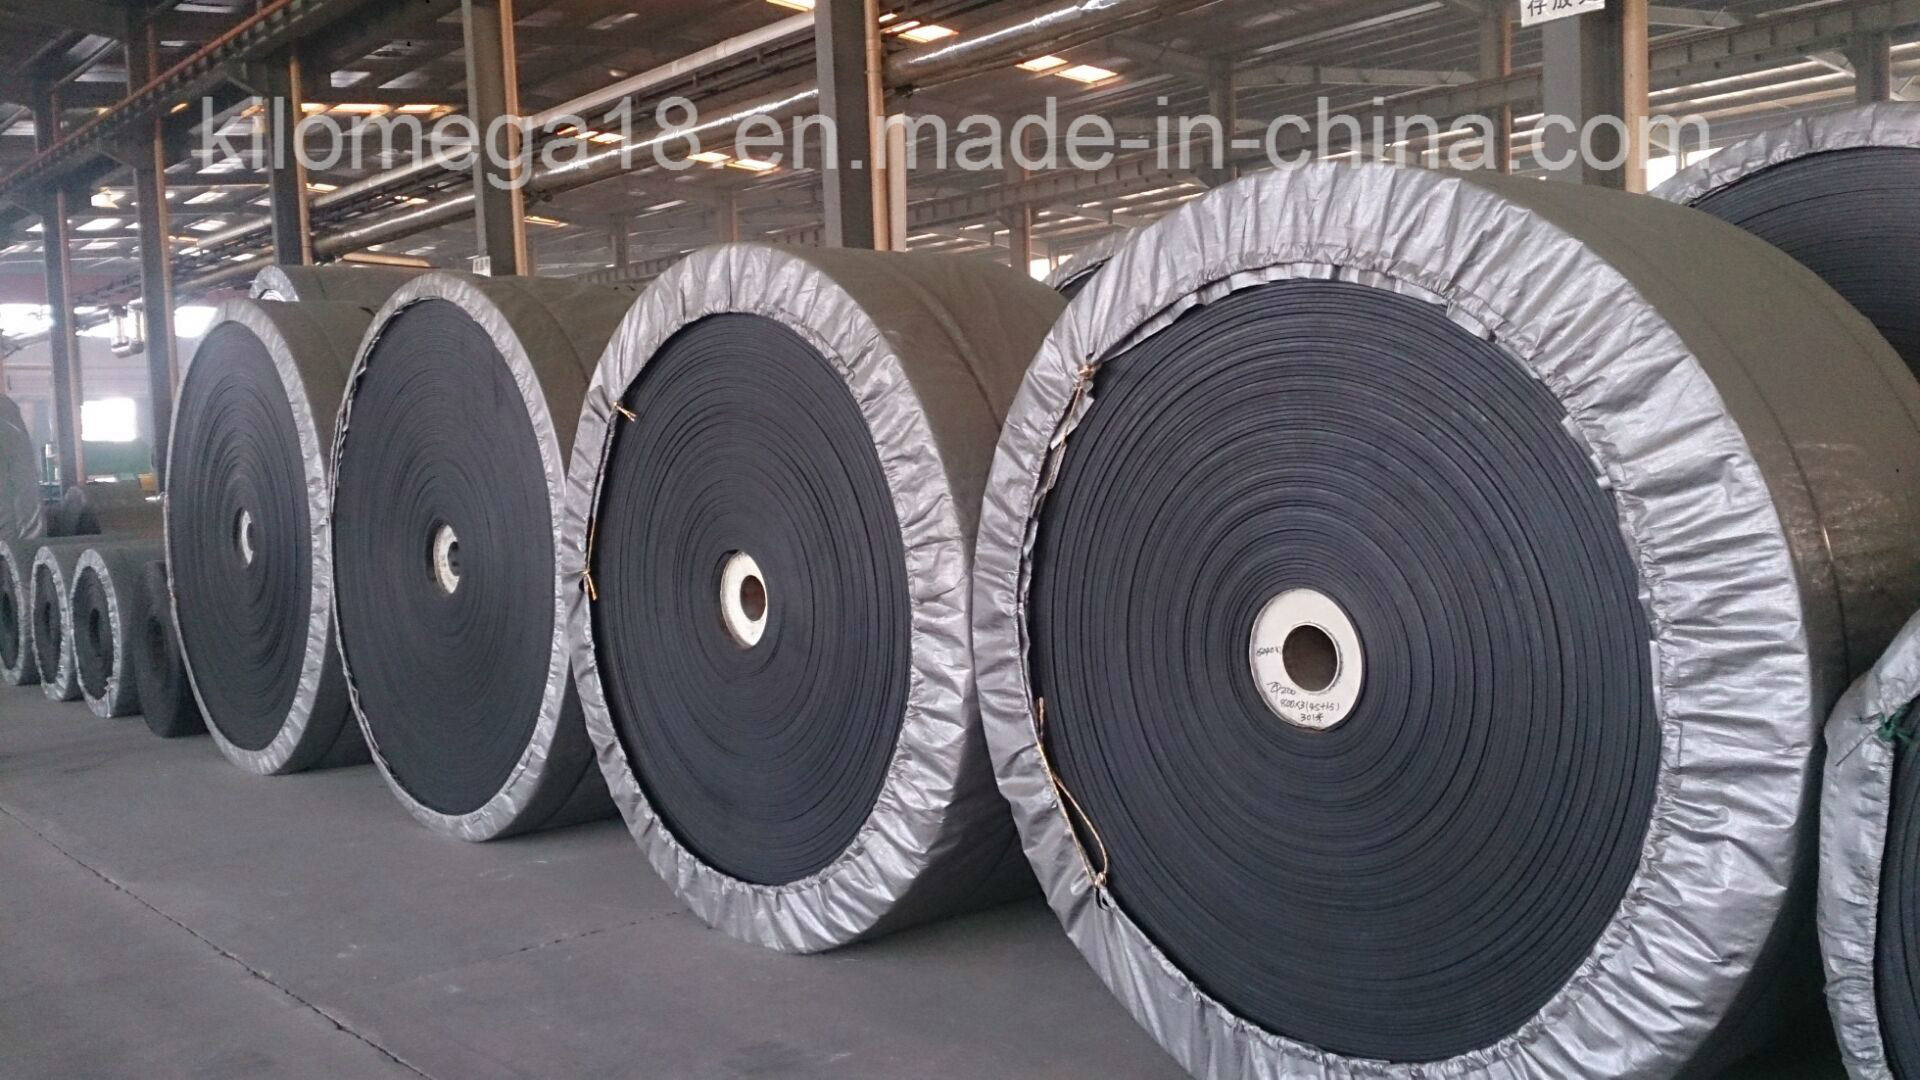 Black Green White PVC/PU Conveyor Belt Manufacturers Rubber Steel Cord Conveyor Belt